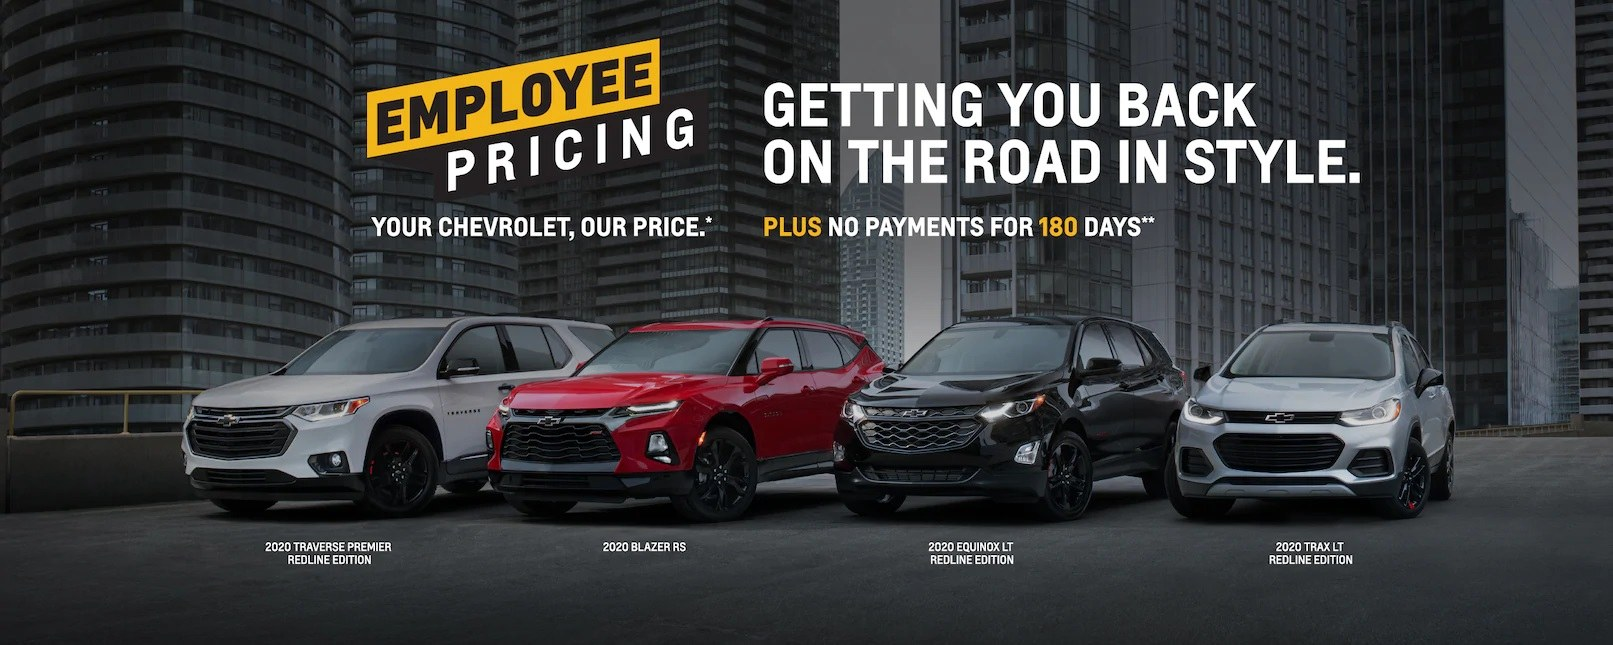 Employee Pricing on Chevrolet Vehicles